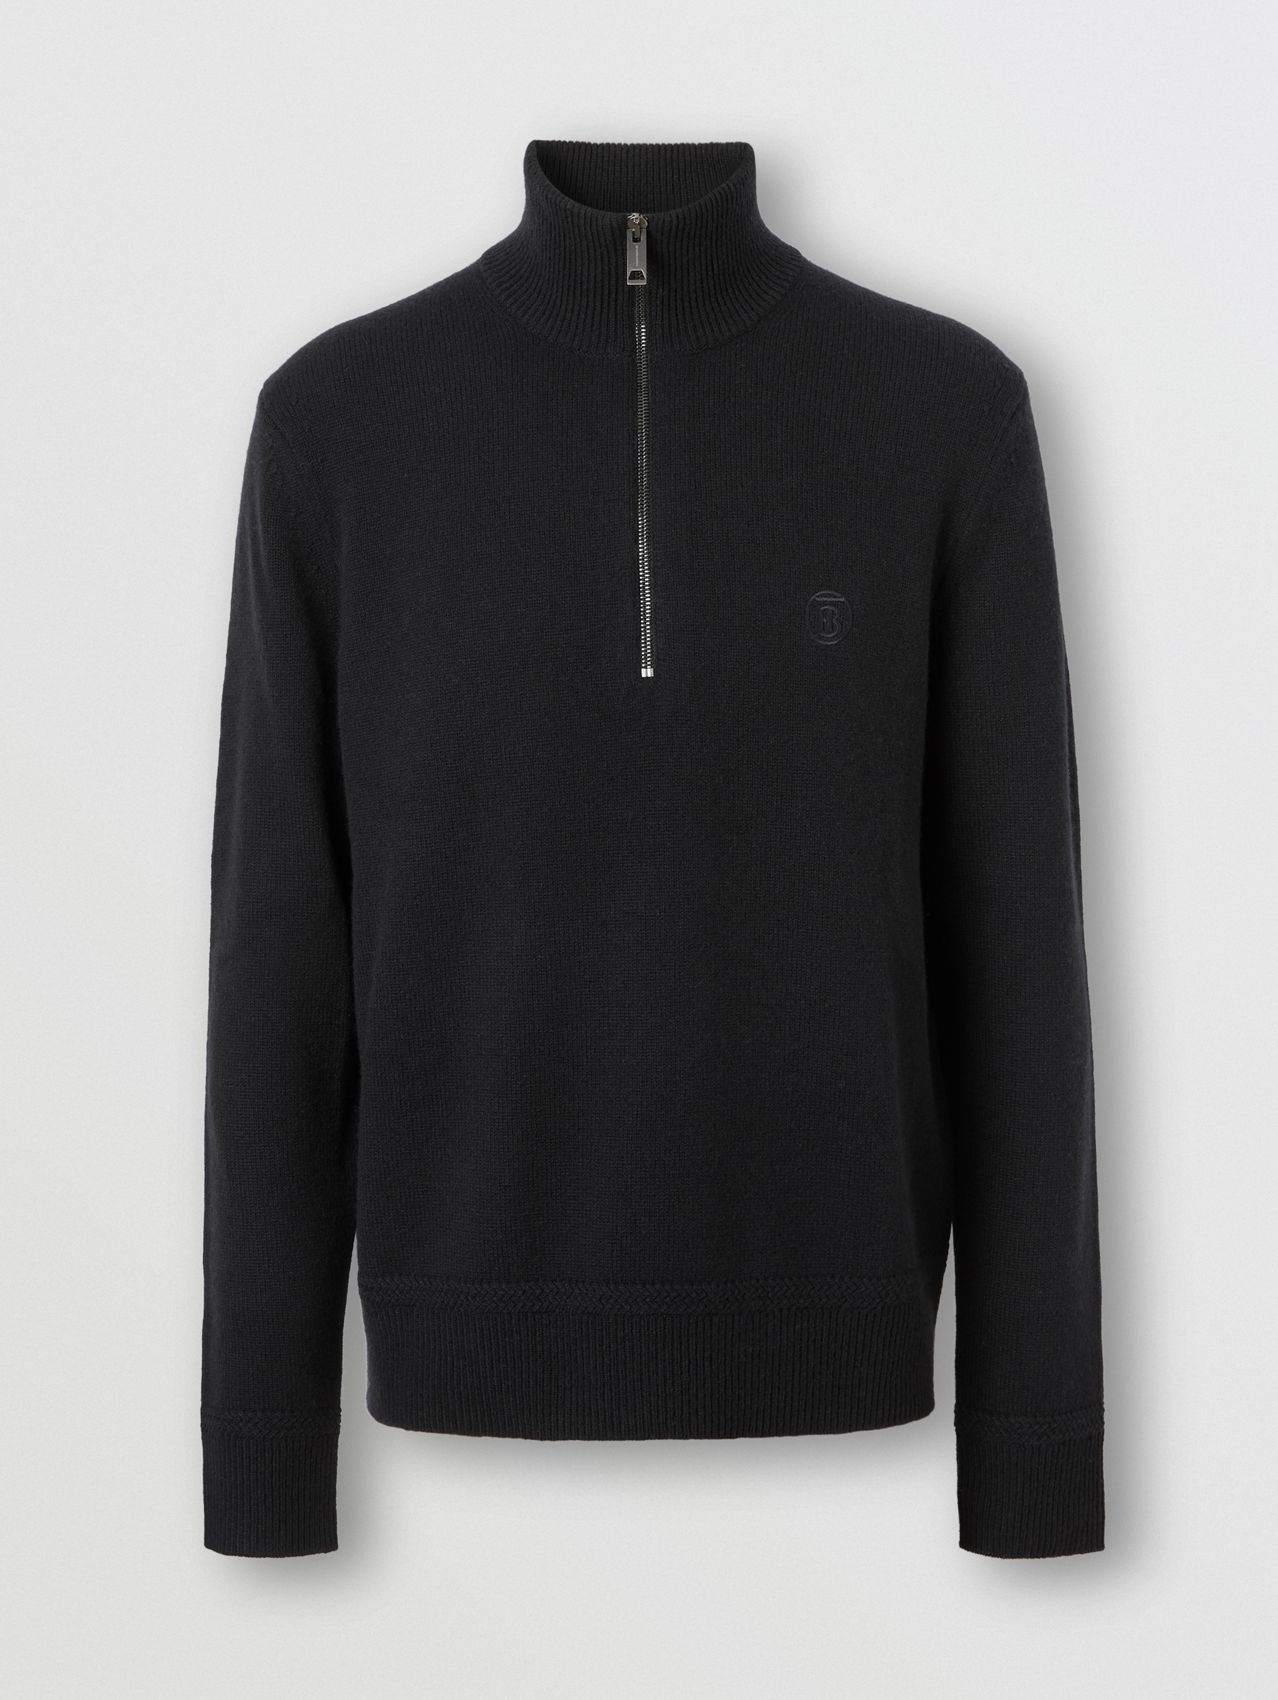 Monogram Motif Cashmere Funnel Neck Sweater in Black